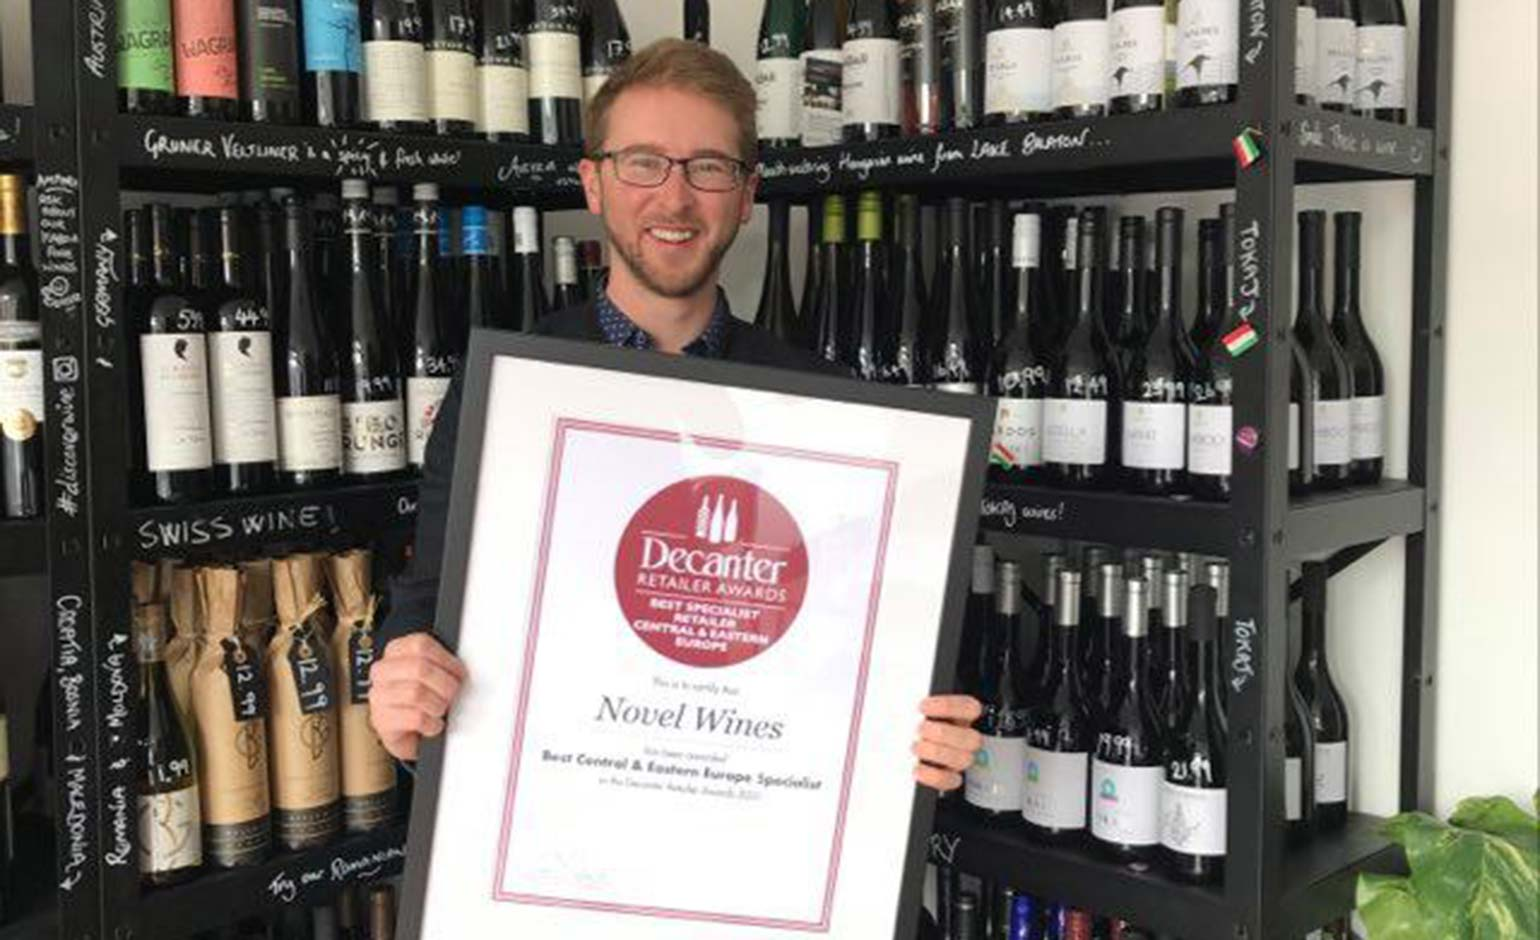 Bath's Novel Wines wins coveted Decanter Award for second year running